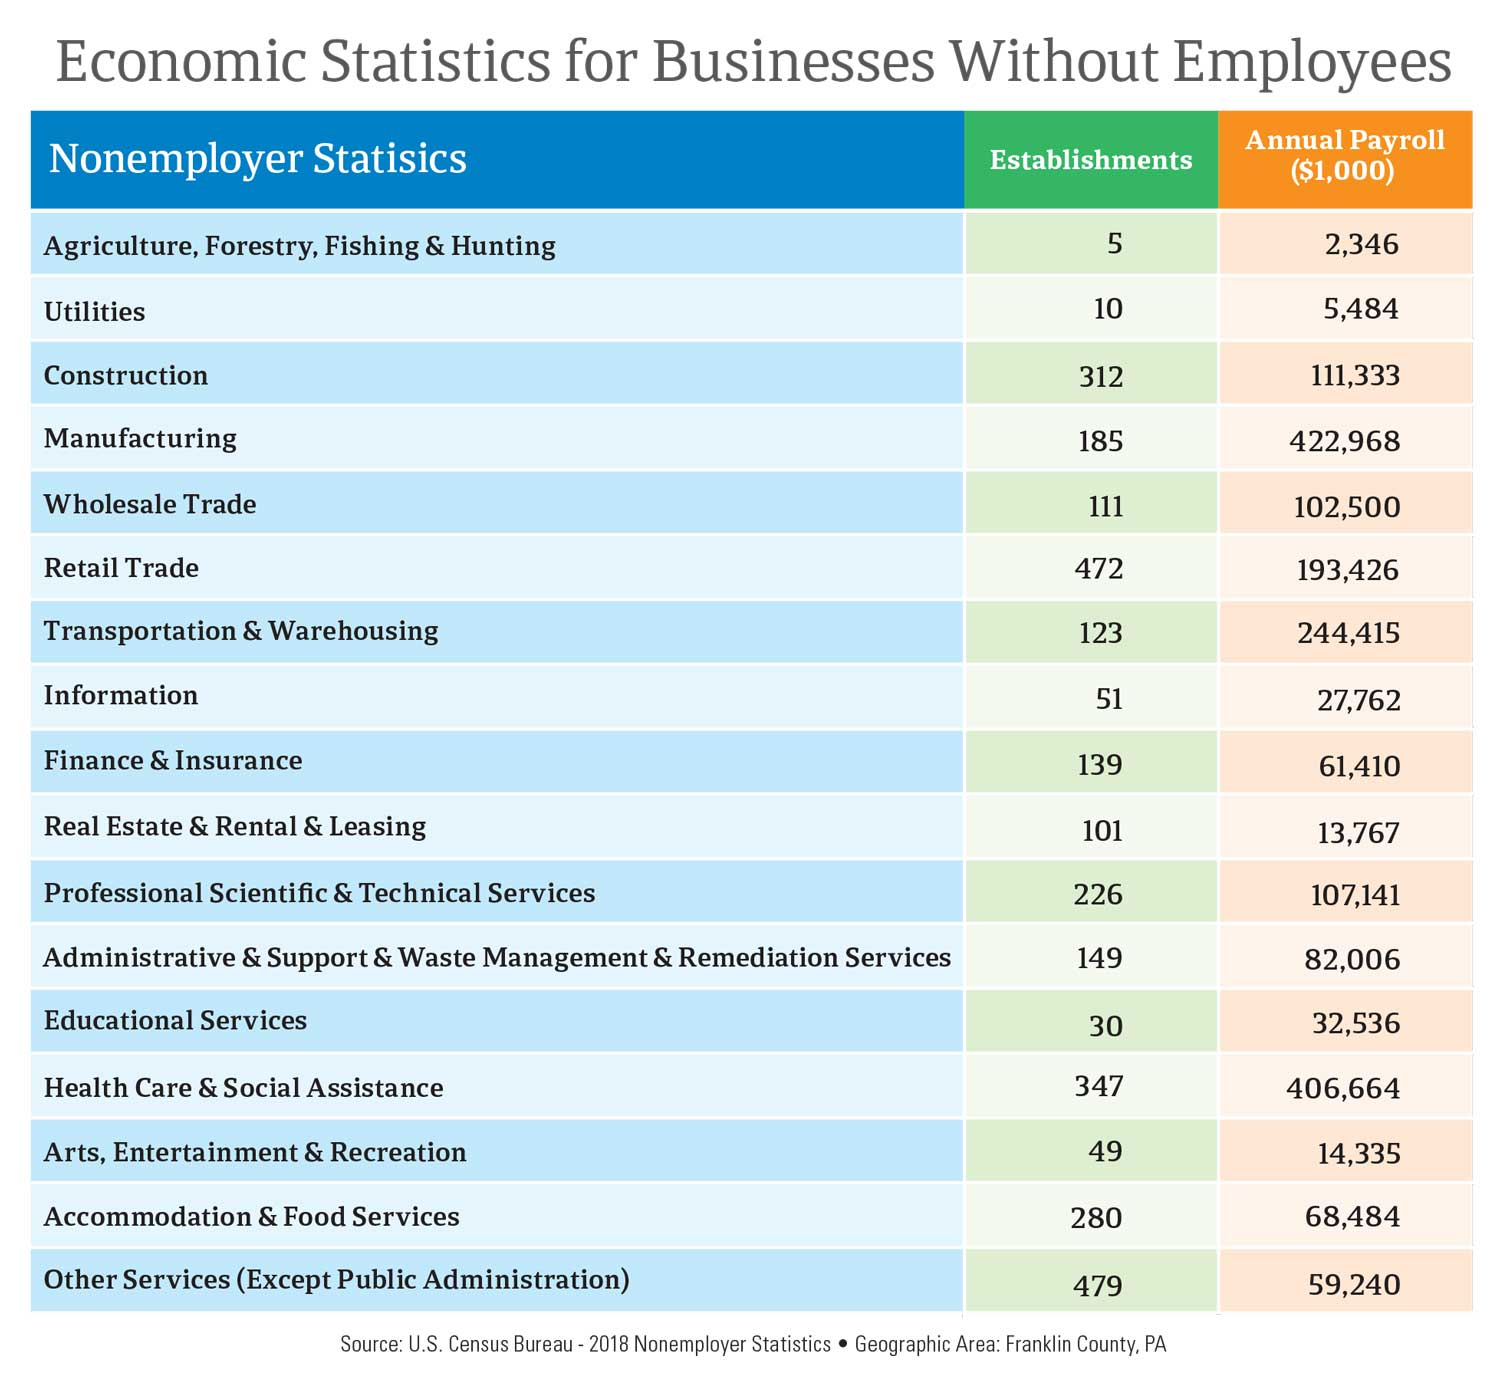 Economic Statistics for Businesses Without Employees